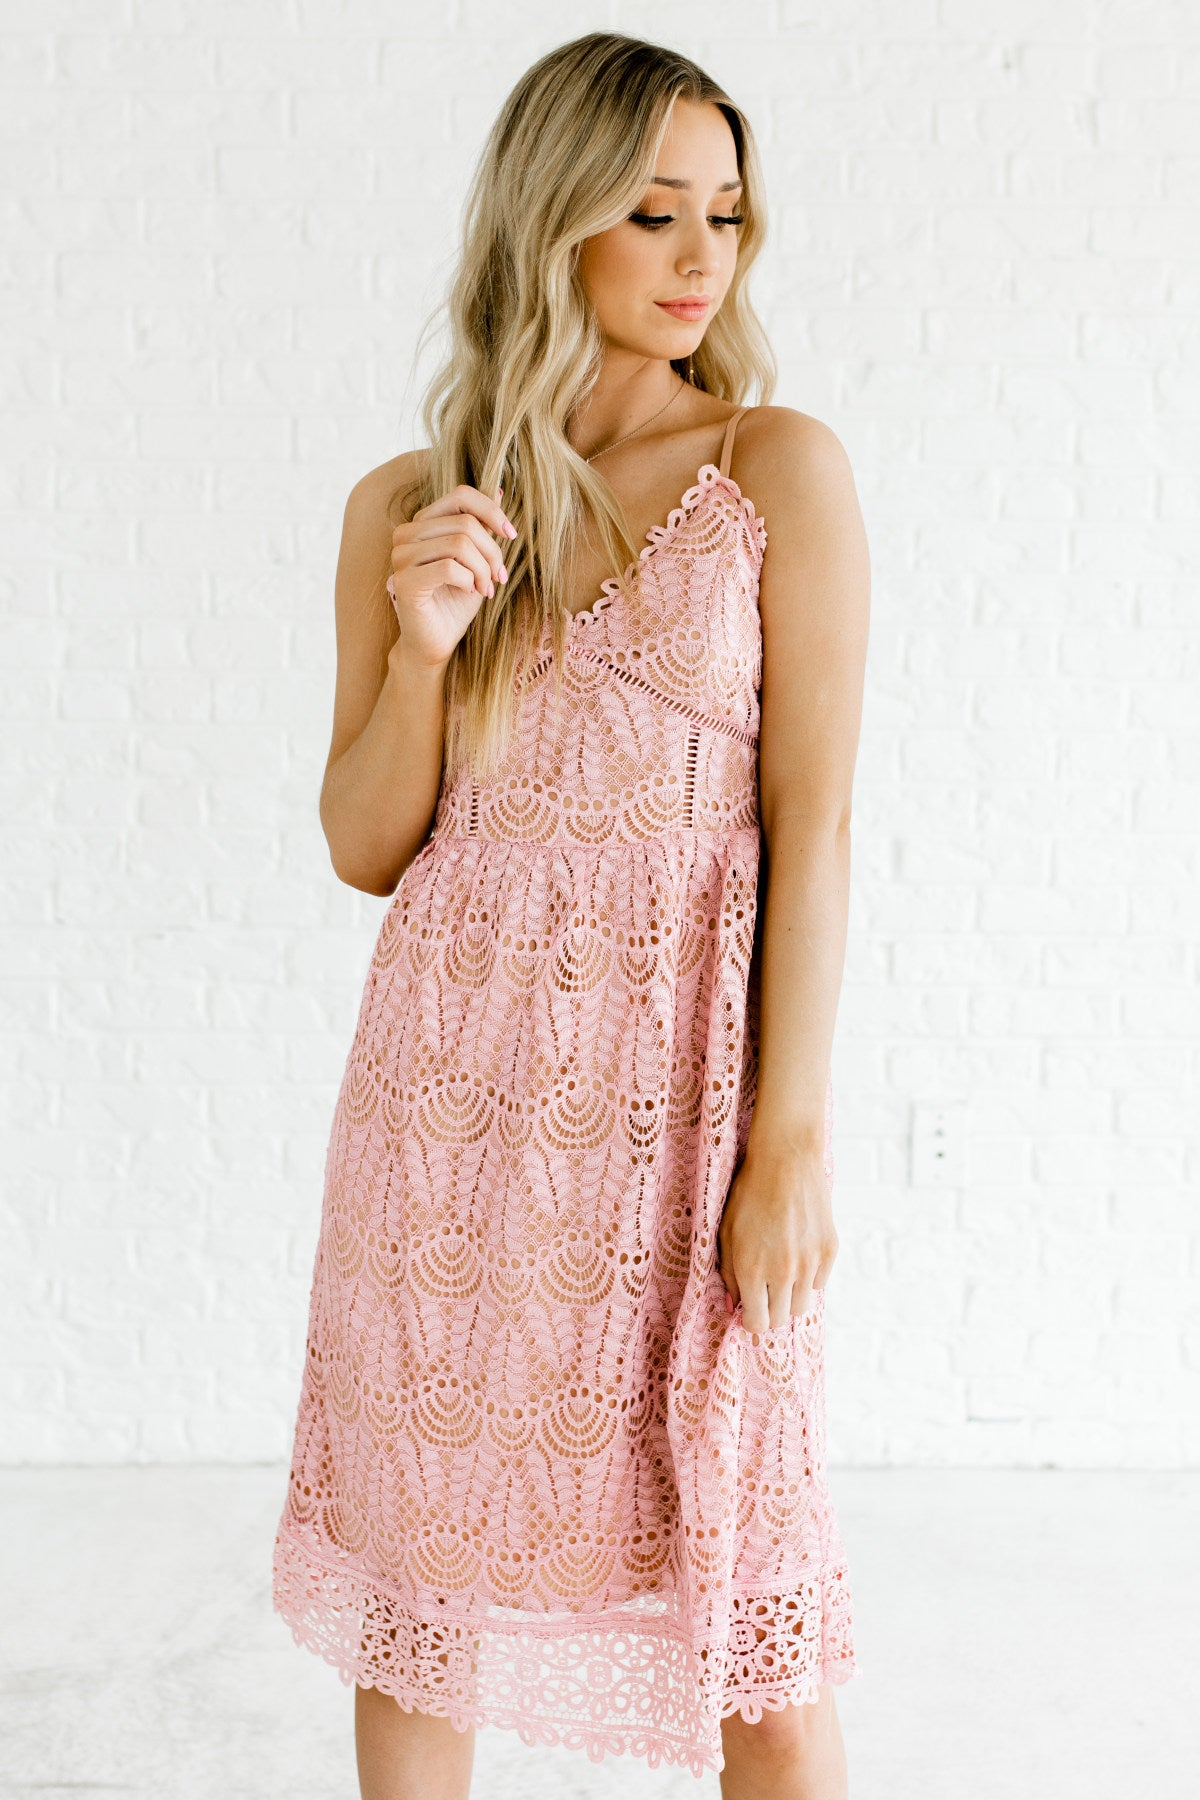 Pink Glowy Shiny Lace Overlay Knee Length Boutique Dresses